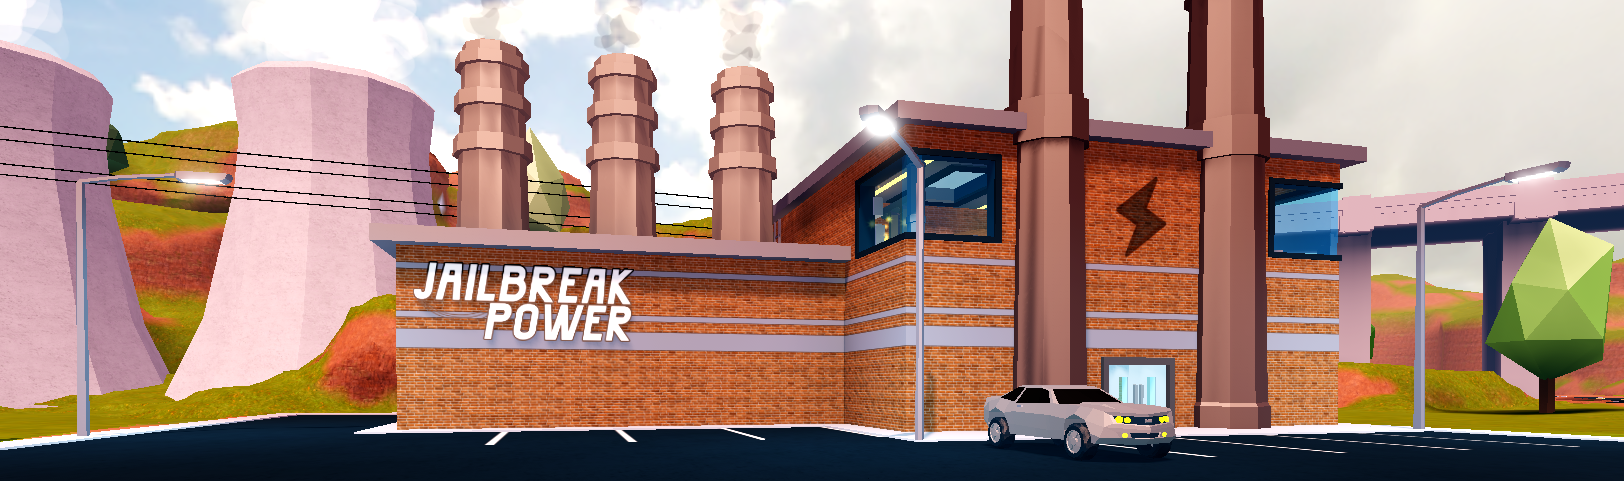 Roblox Jailbreak Power Plant Robbery - Wholefed org